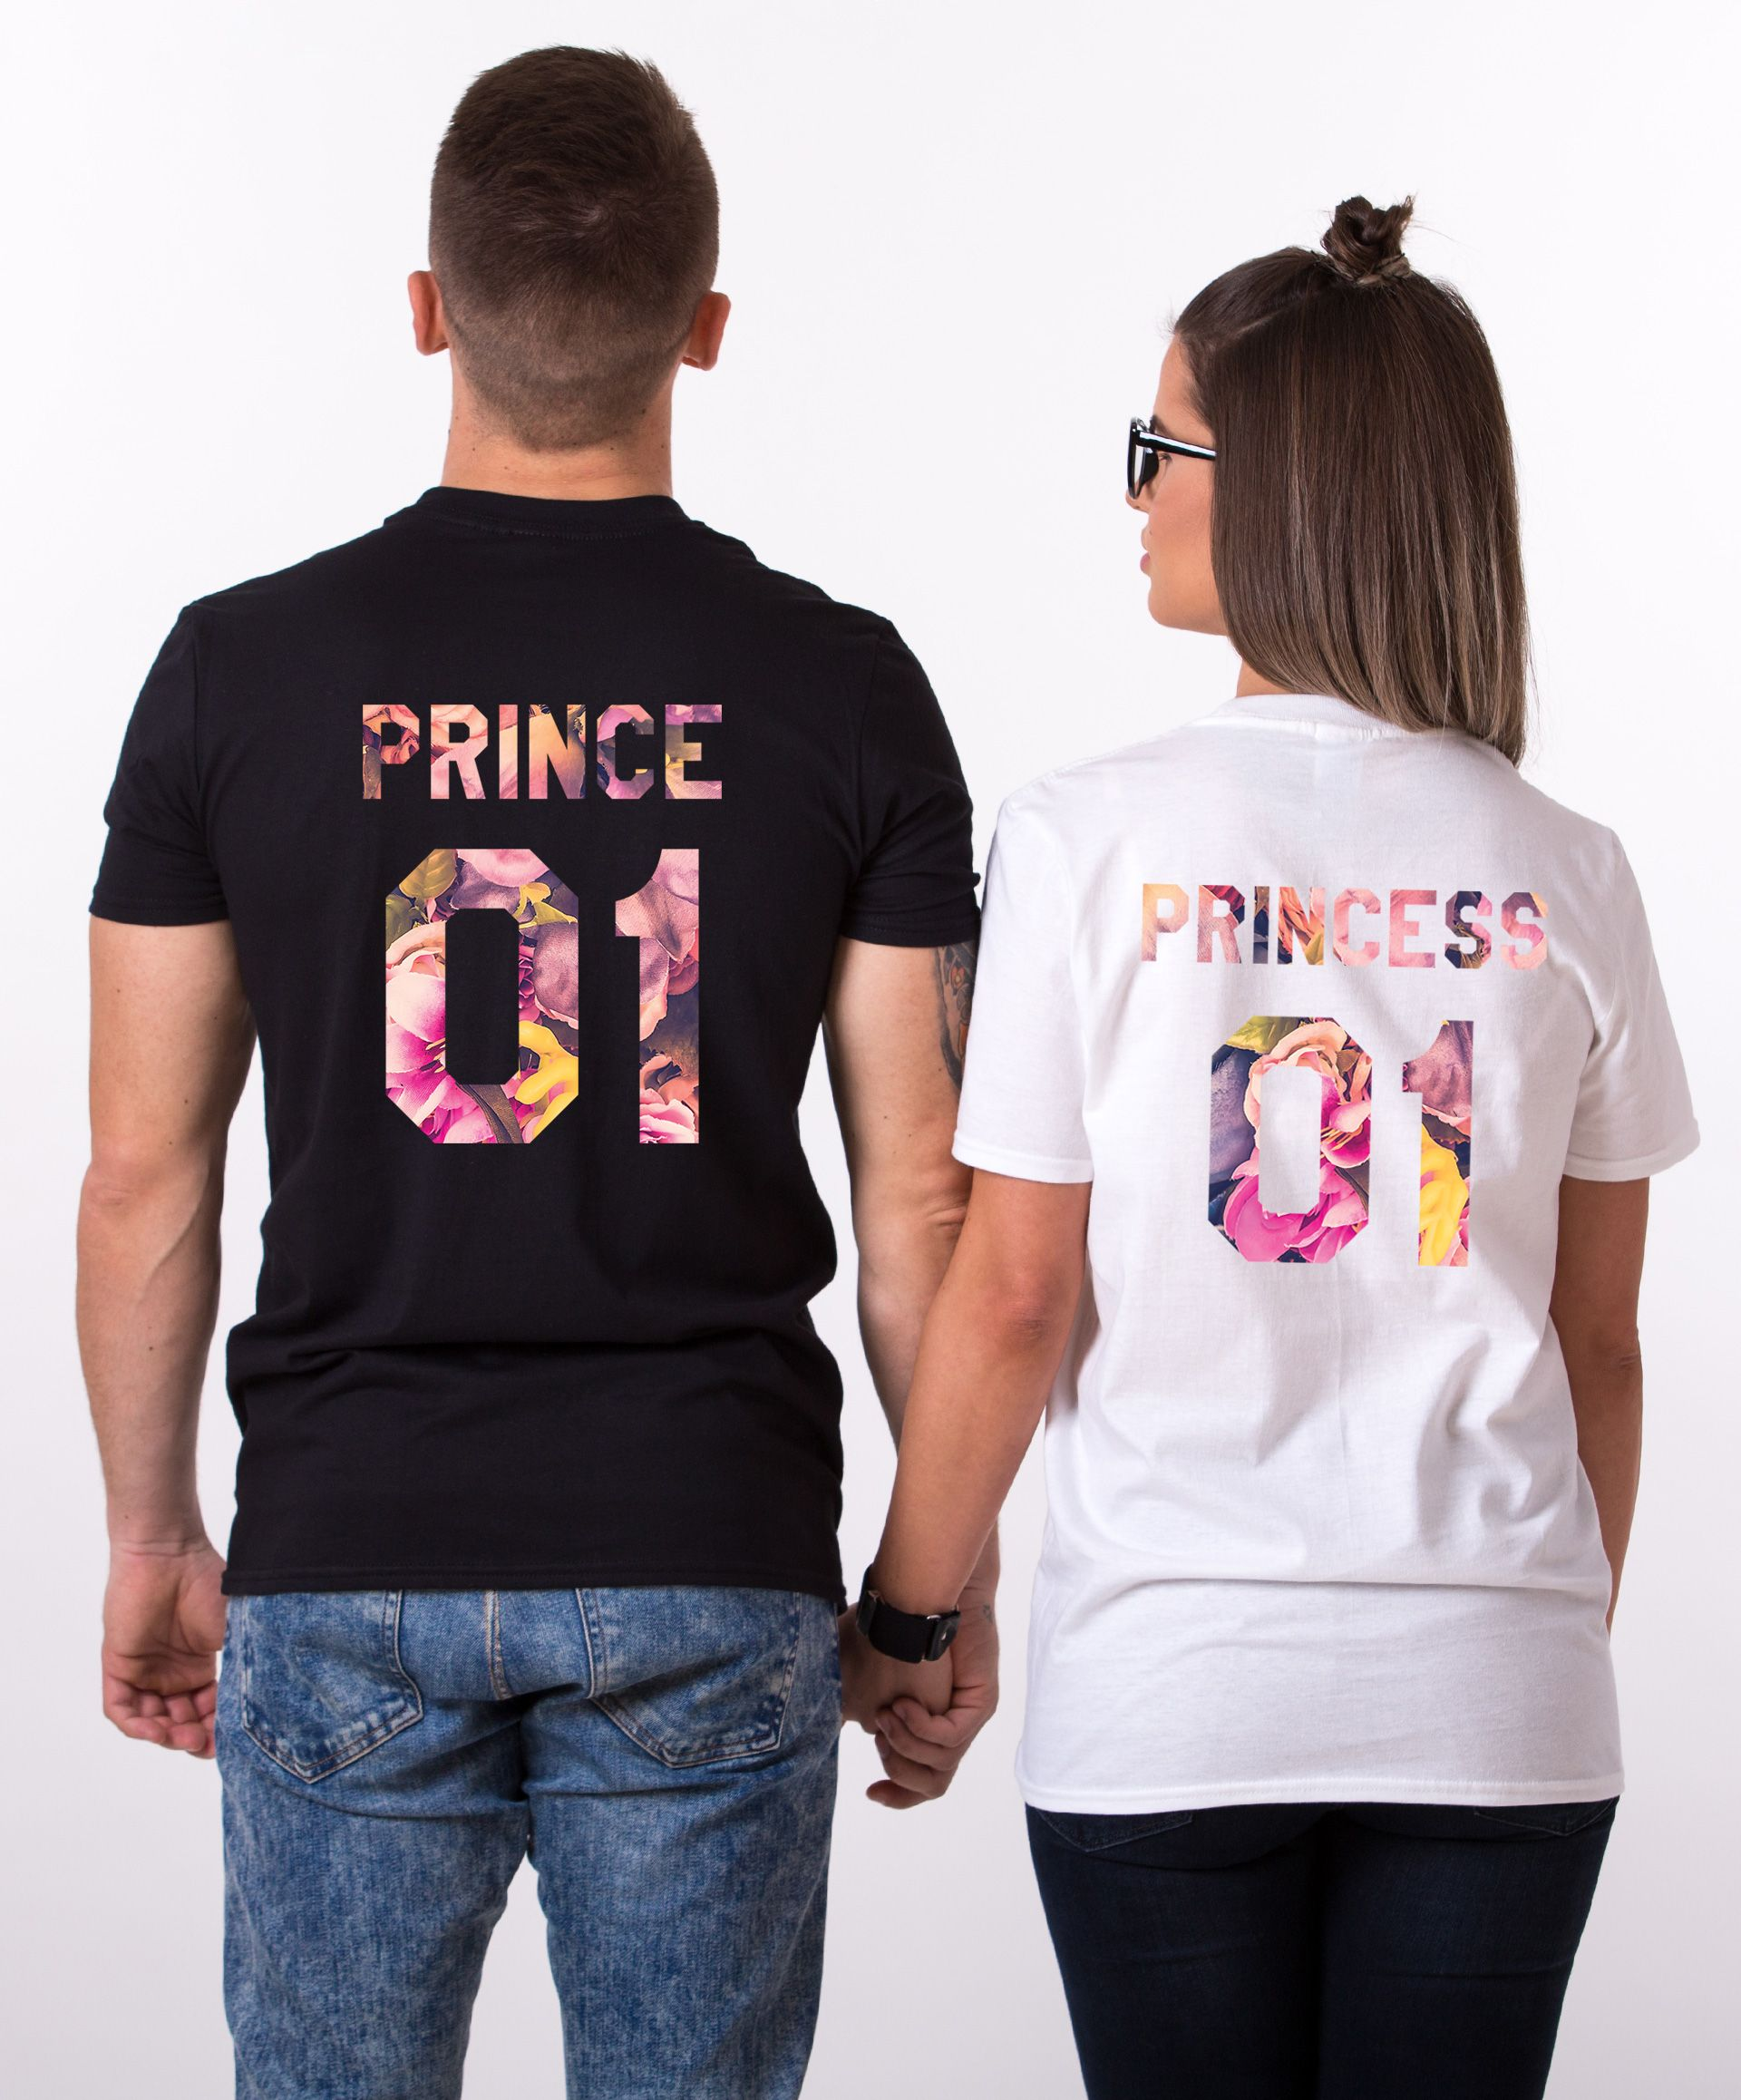 Fleur Collection, Floral King Queen Shirts, Matching Shirts for Couples, Shirts for Couples, Fleur King Shirt, Fleur Queen Shirt, UNISEX